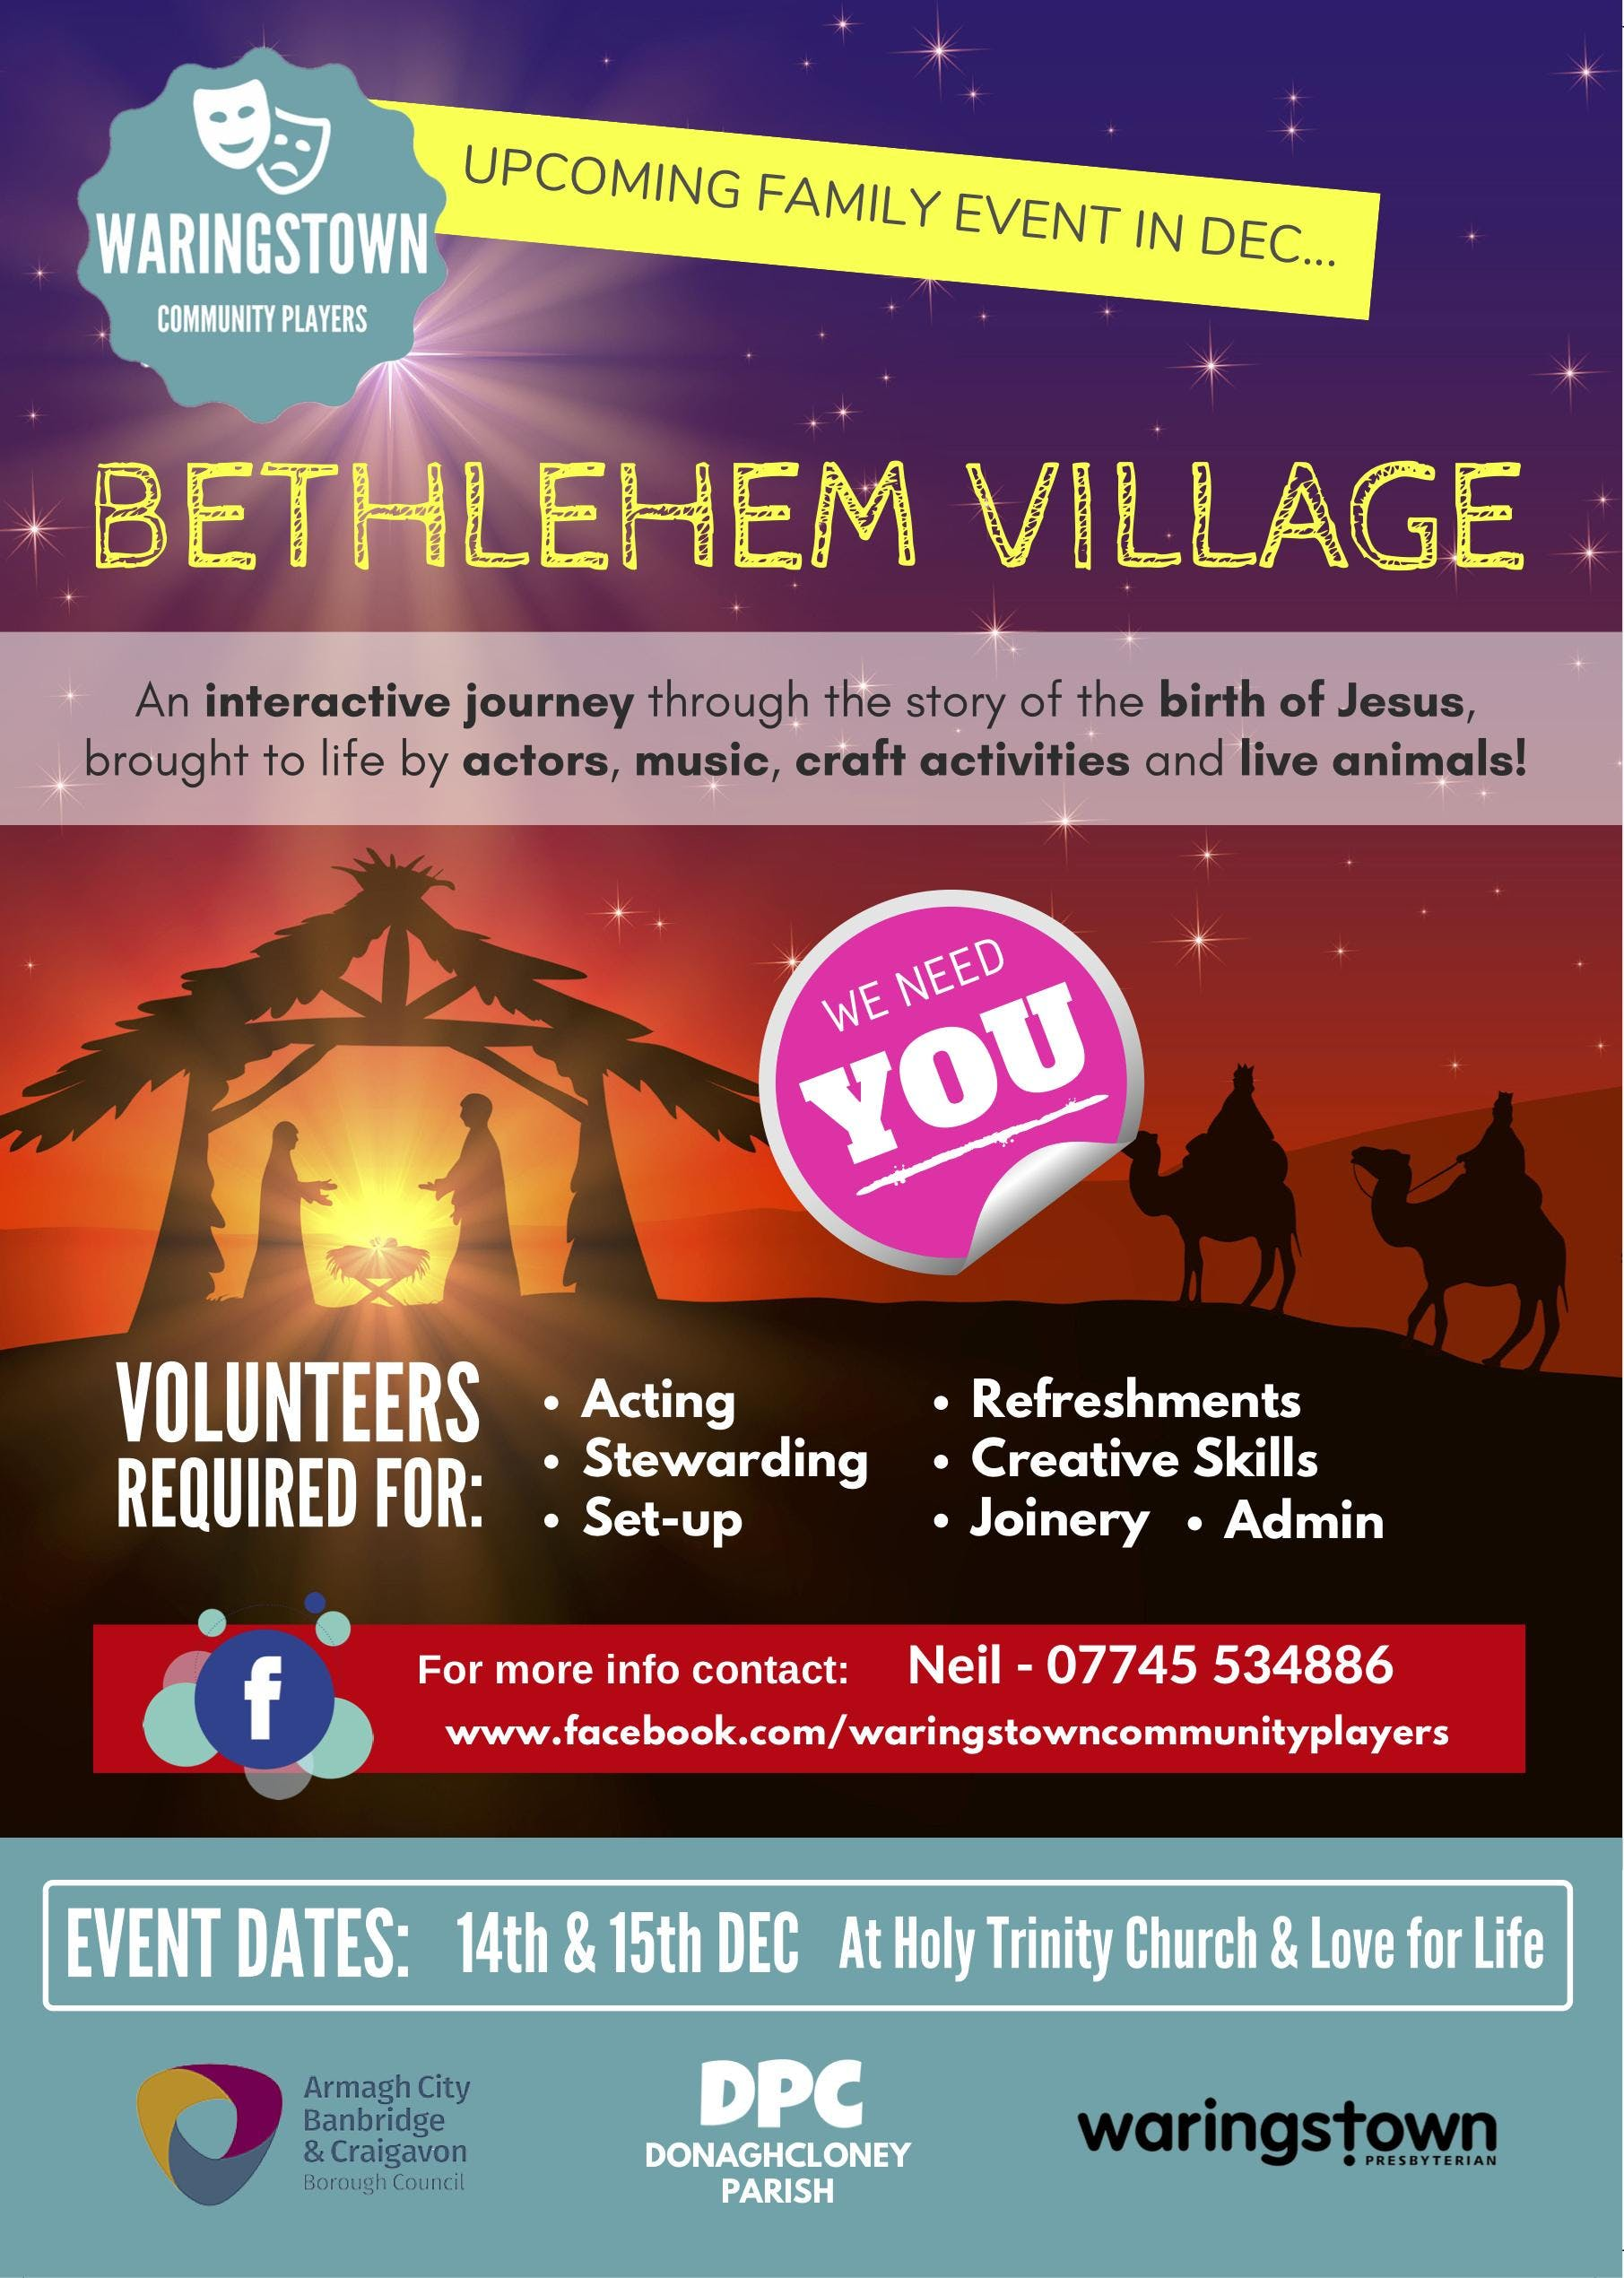 Bethlehem Village in Waringstown